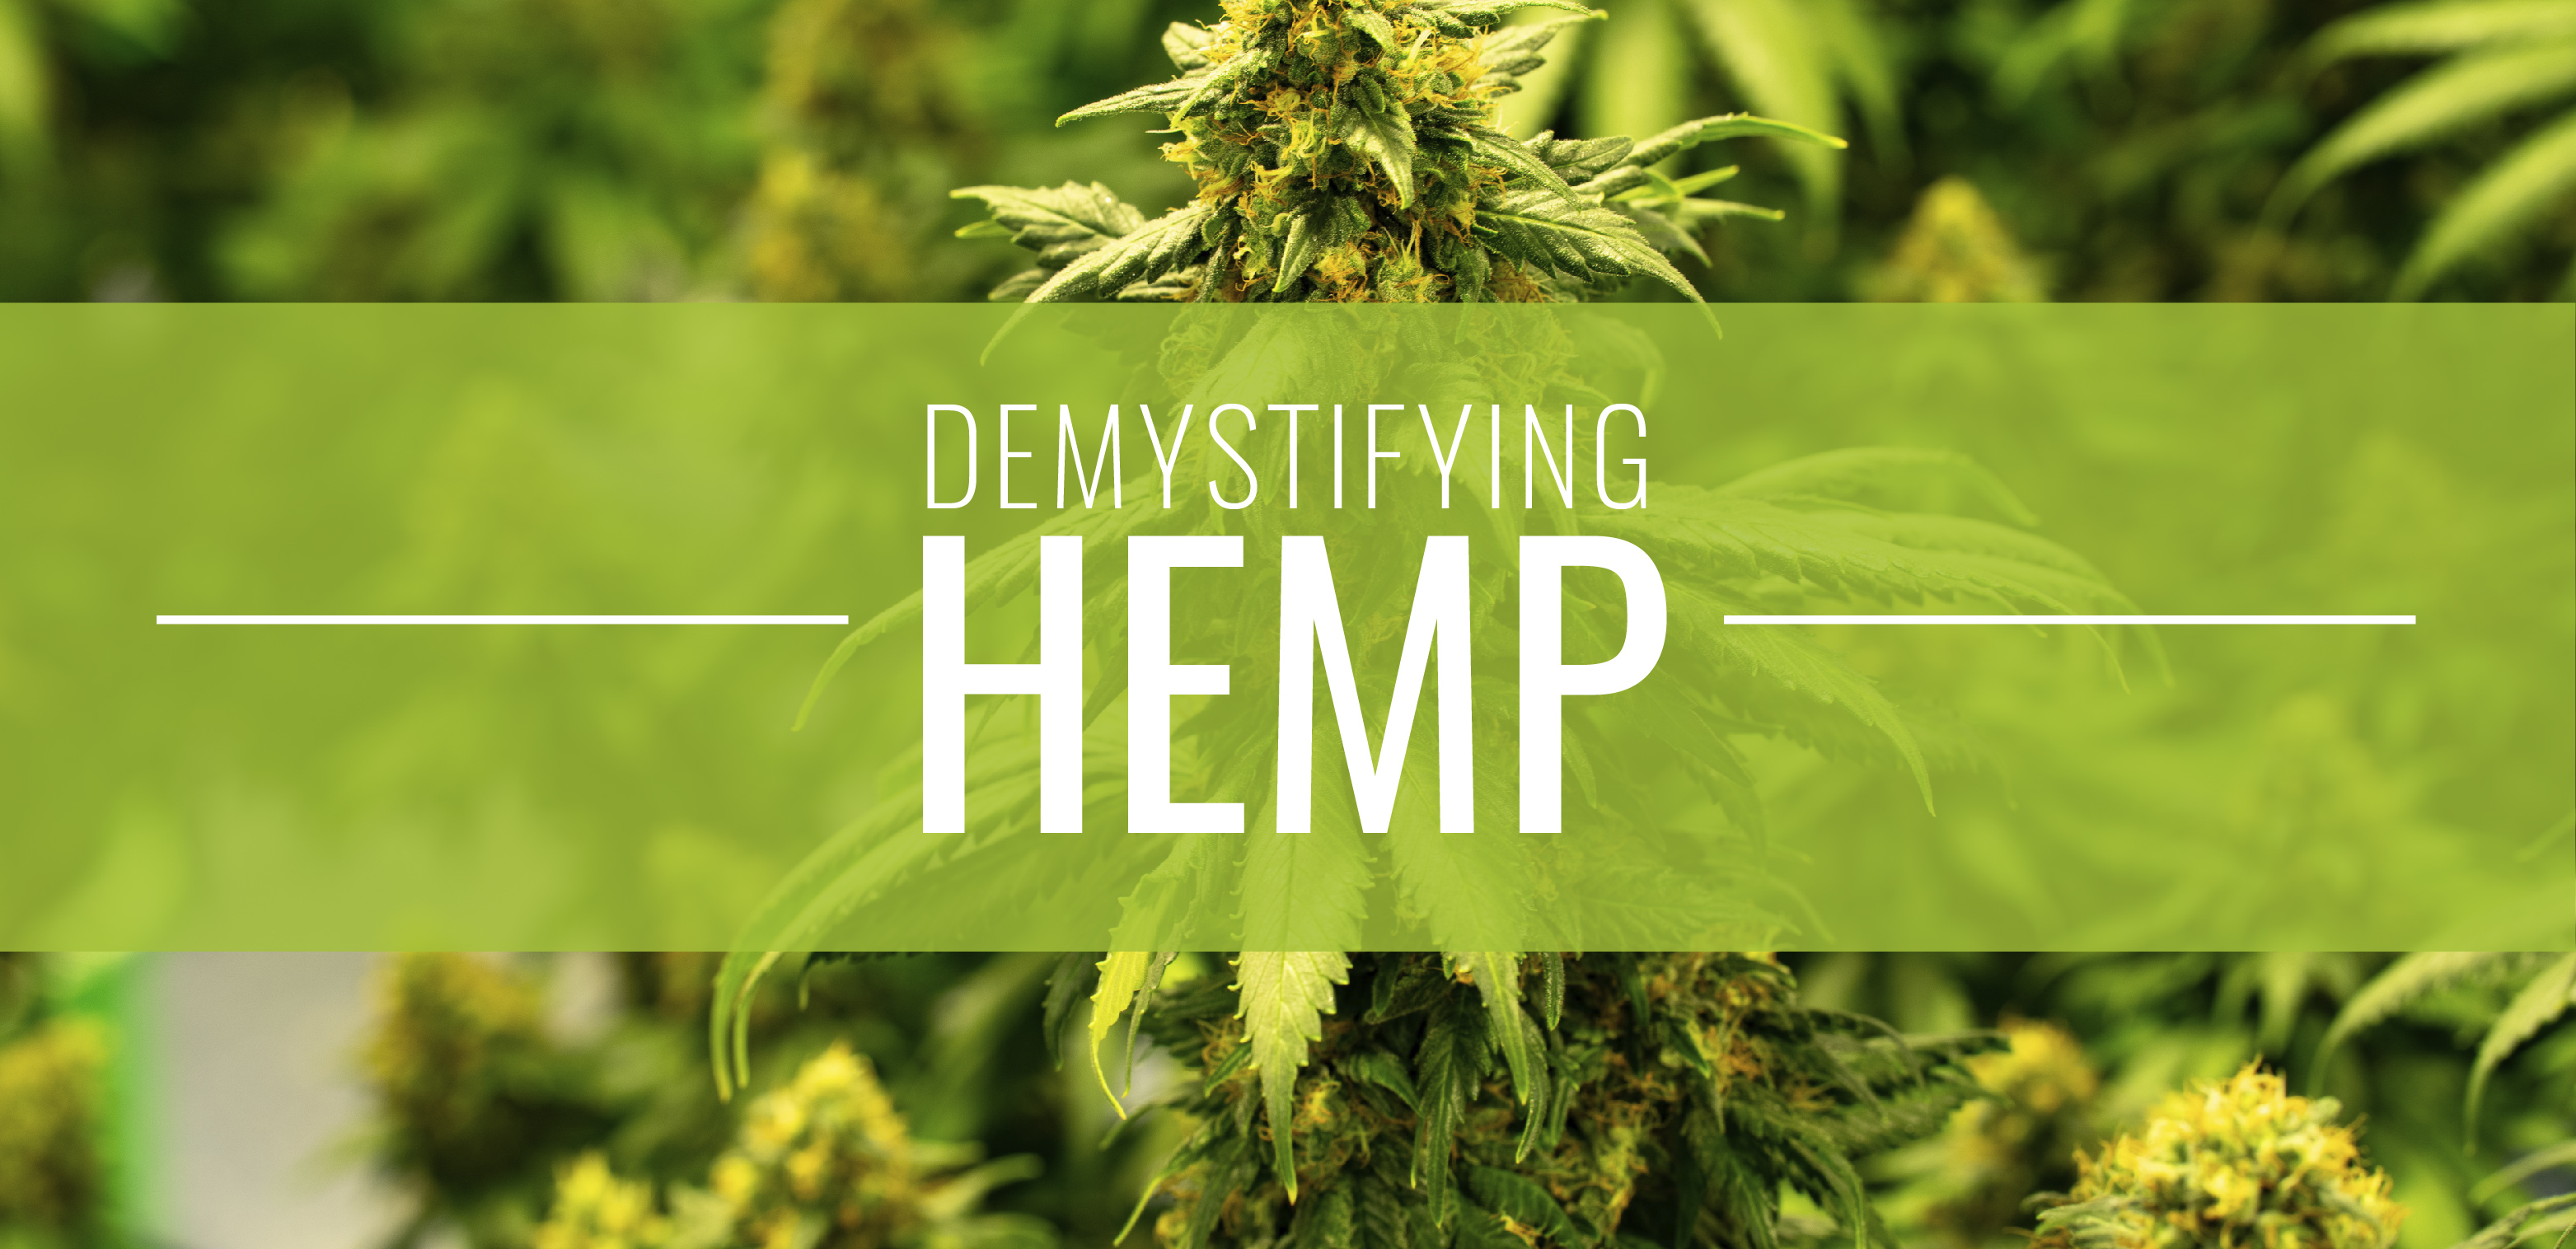 De-mystifying hemp